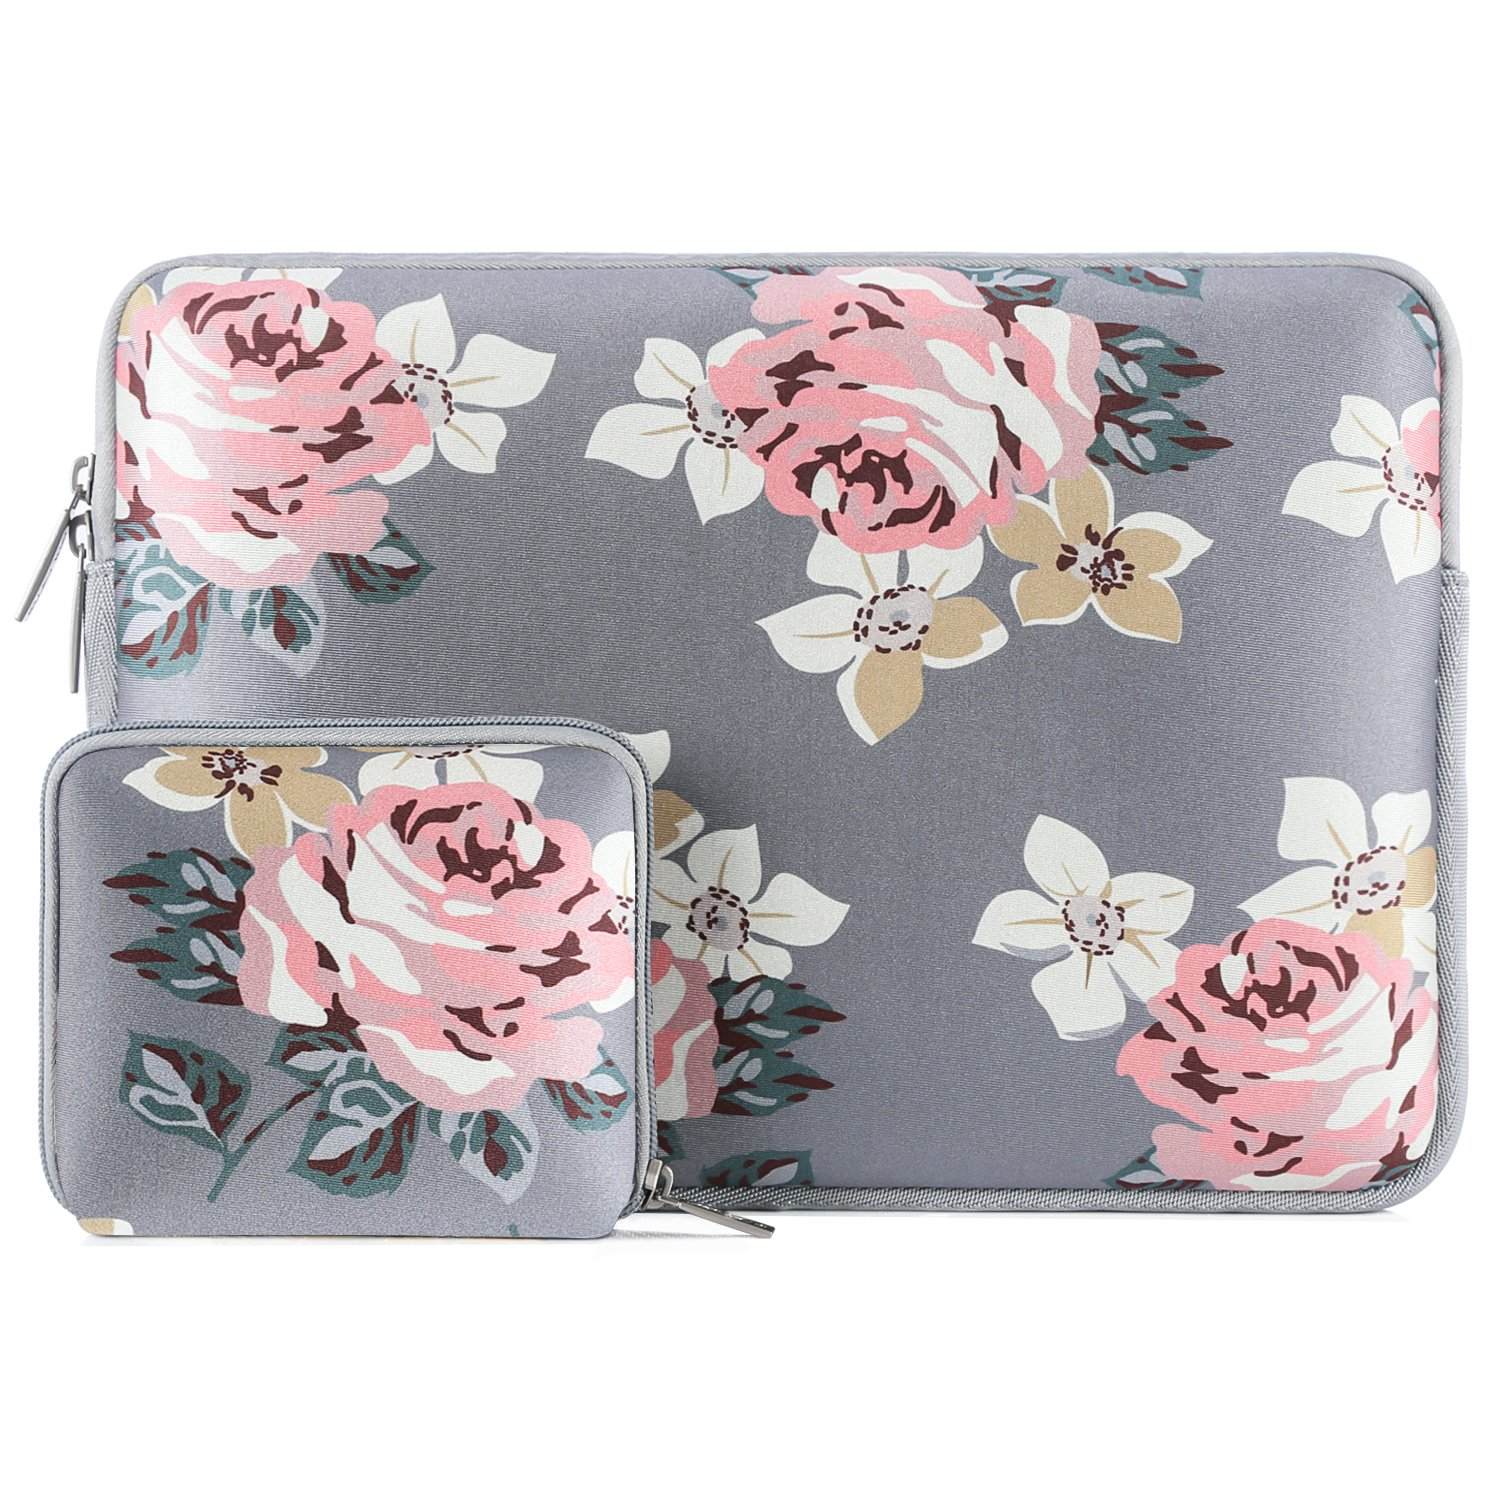 MOSISO Laptop Sleeve Compatible 13-13.3 Inch MacBook Pro, MacBook Air, Notebook with Small Case, Water Repellent Lycra Rose Pattern Protective Carrying Bag Cover, Gray